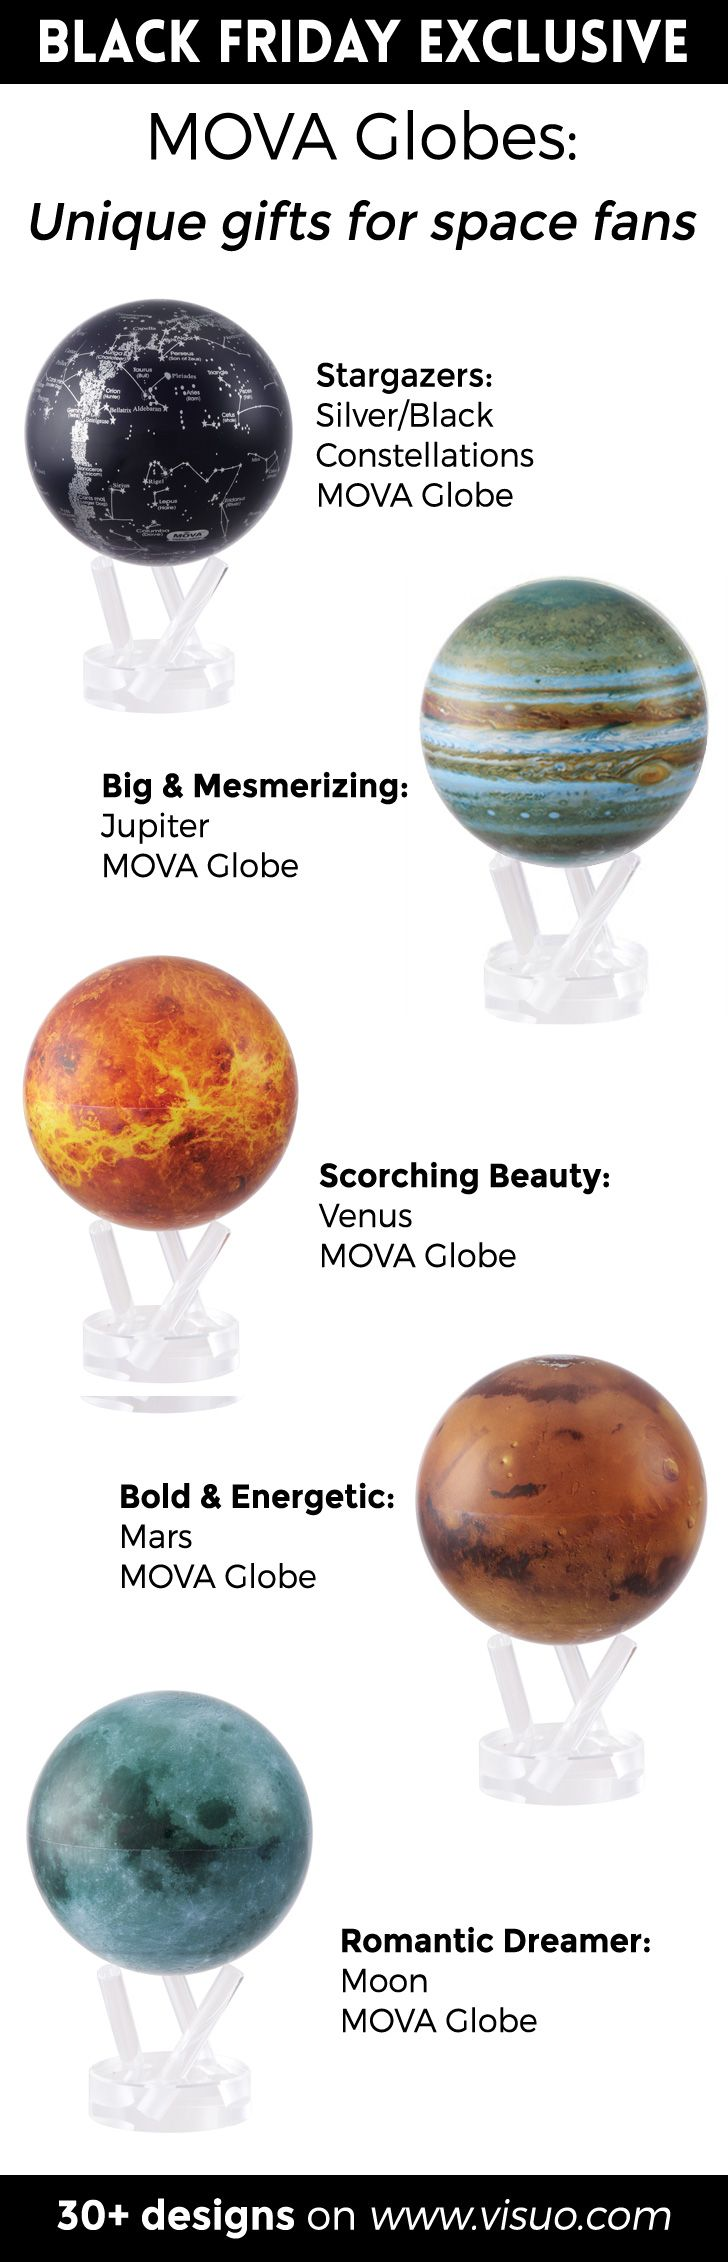 Planet MOVA Globes rotate continuously on their own using ambient light, no batteries or wires required. With satellite images of your favorite planets and stars and a mesmerizing rotation, these gifts will keep space fans and cosmic dreamers fascinated for hours. Shop with our Black Friday exclusive now!